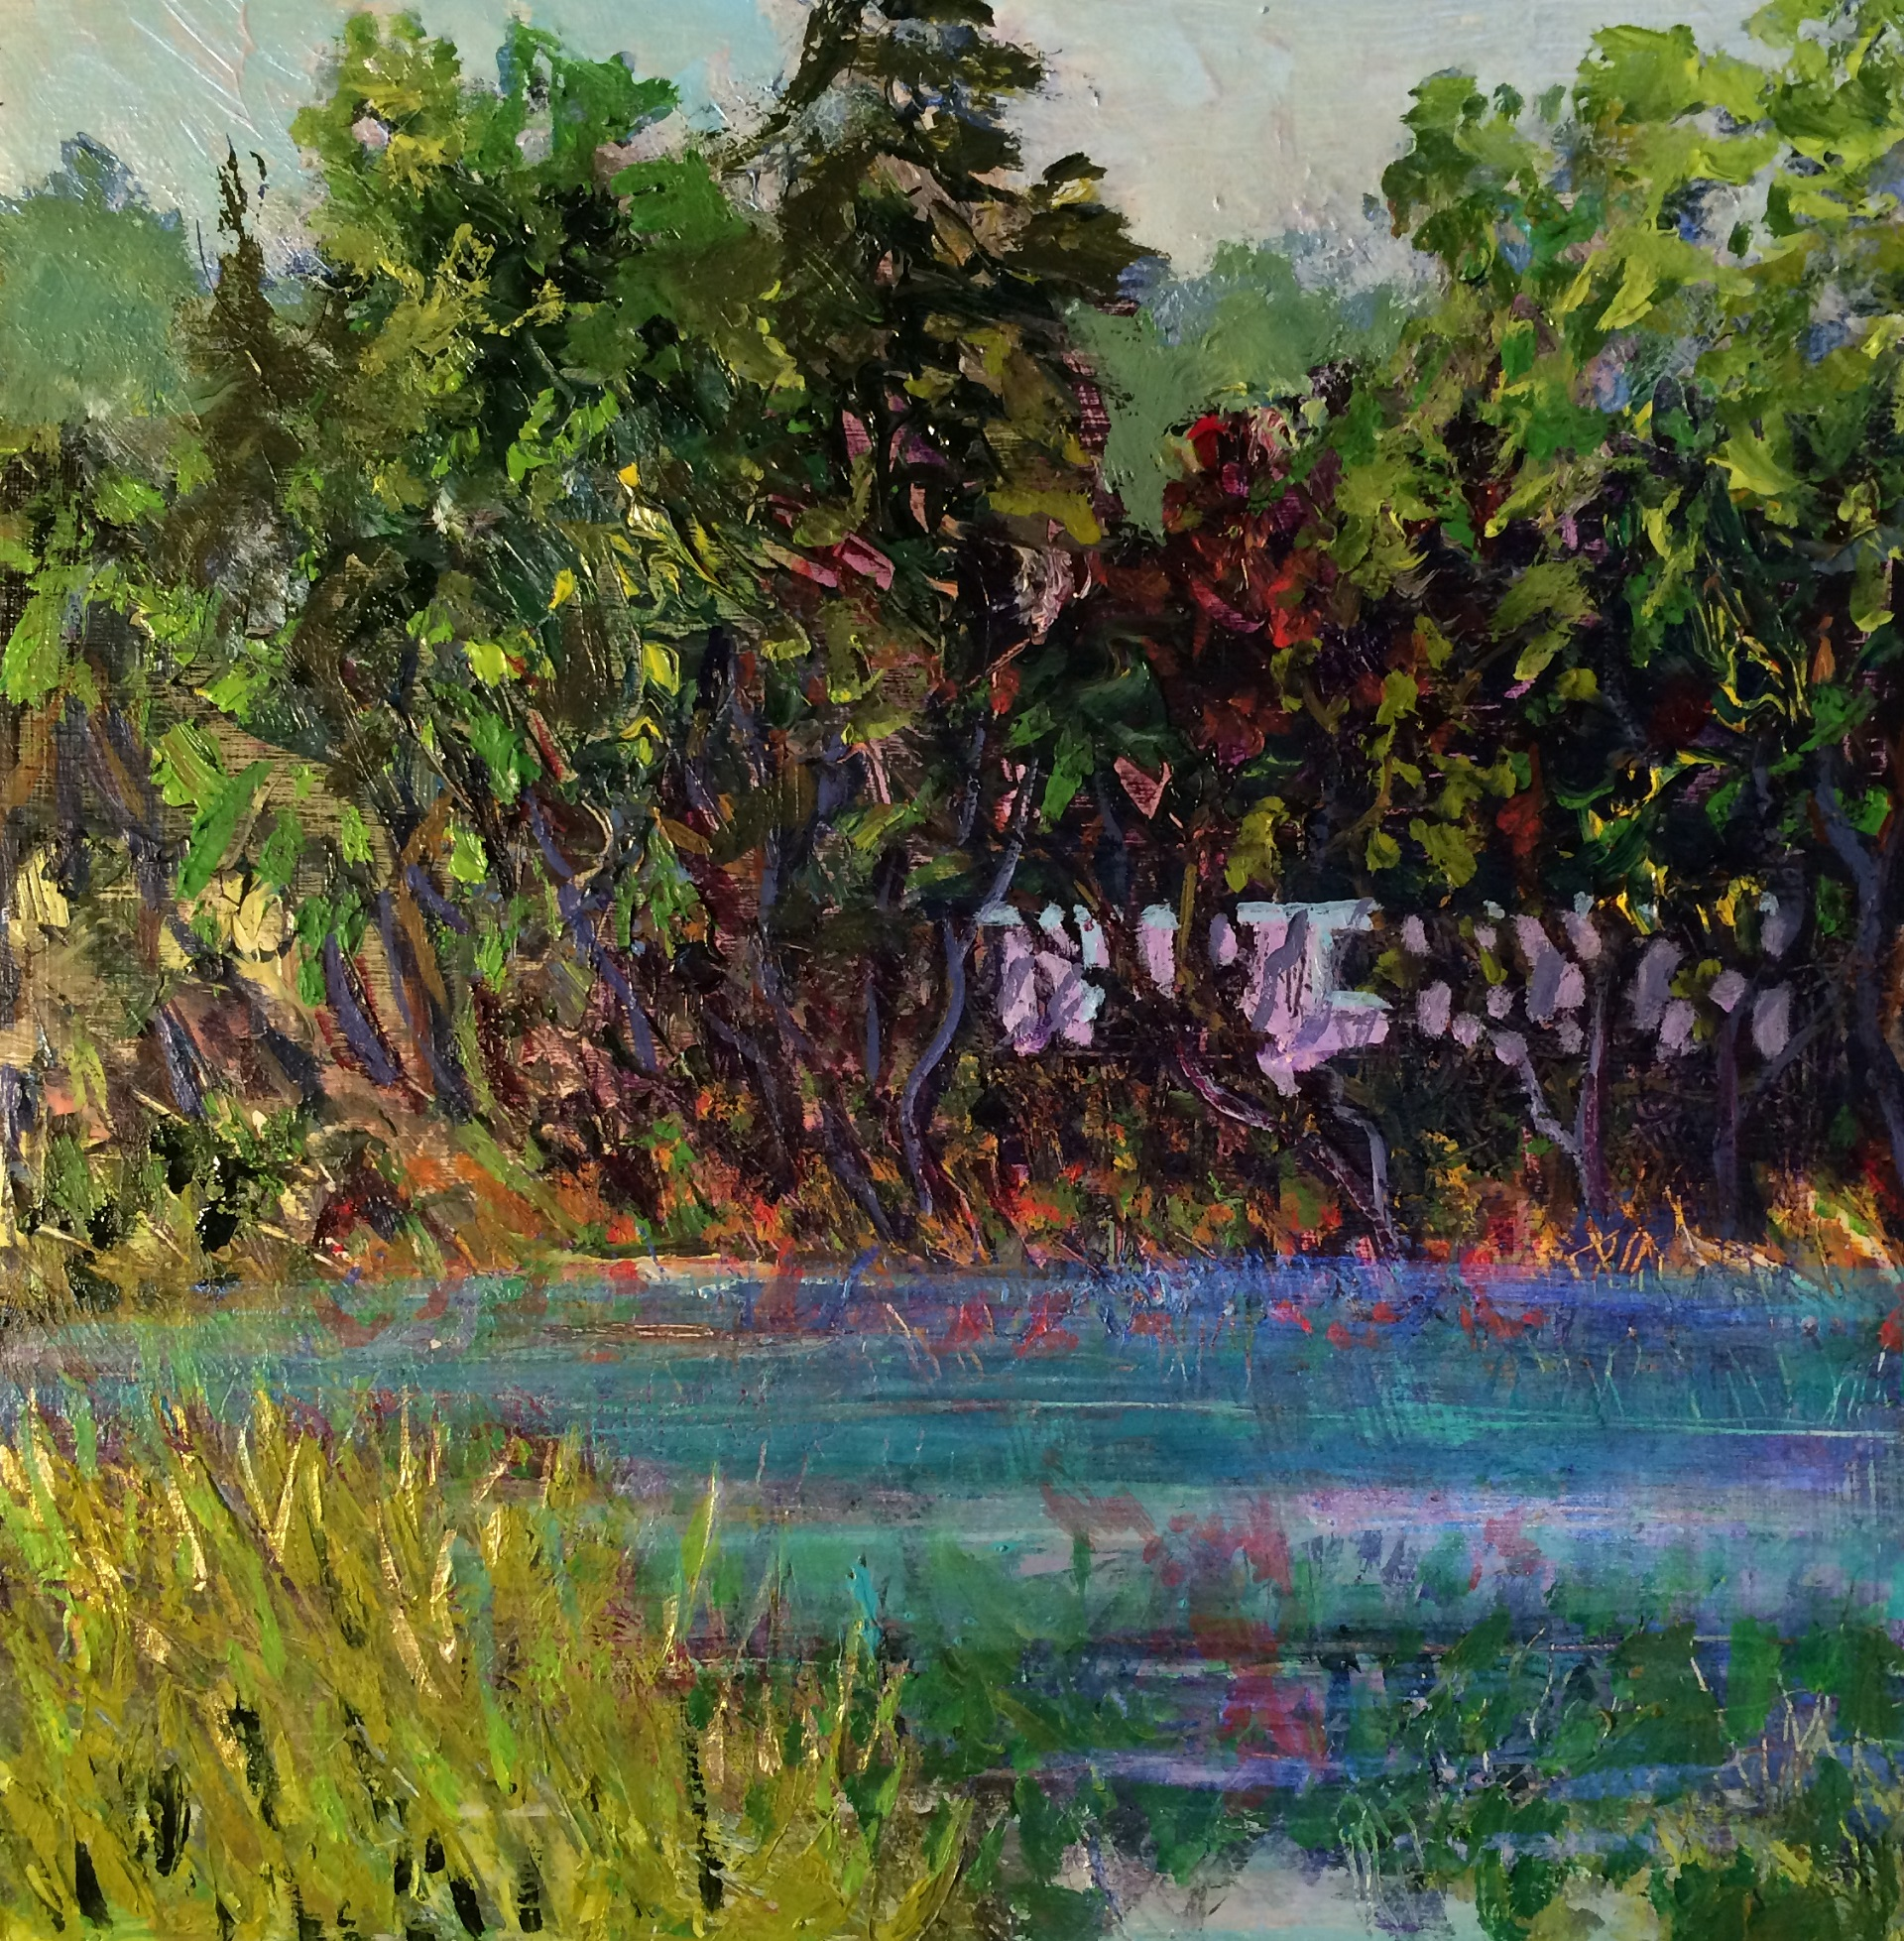 Lakeside Cottage W.E.Shumway acrylic on panel 12 x 12w inches 225.00.JPG